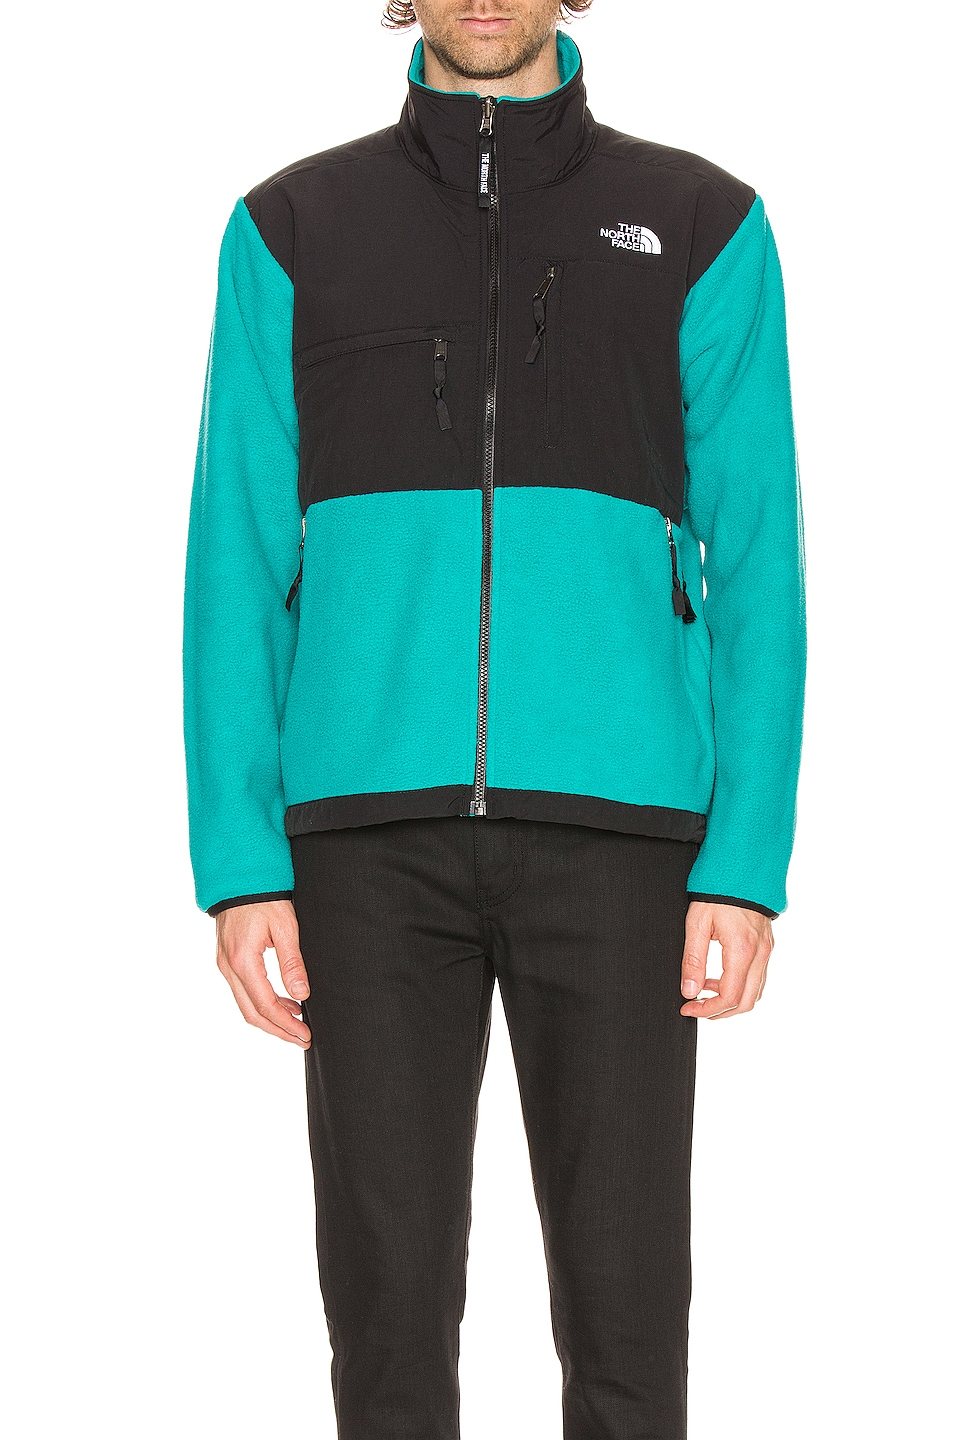 Image 1 of The North Face Black ICON 95 Retro Denali Jacket in Jaiden Green